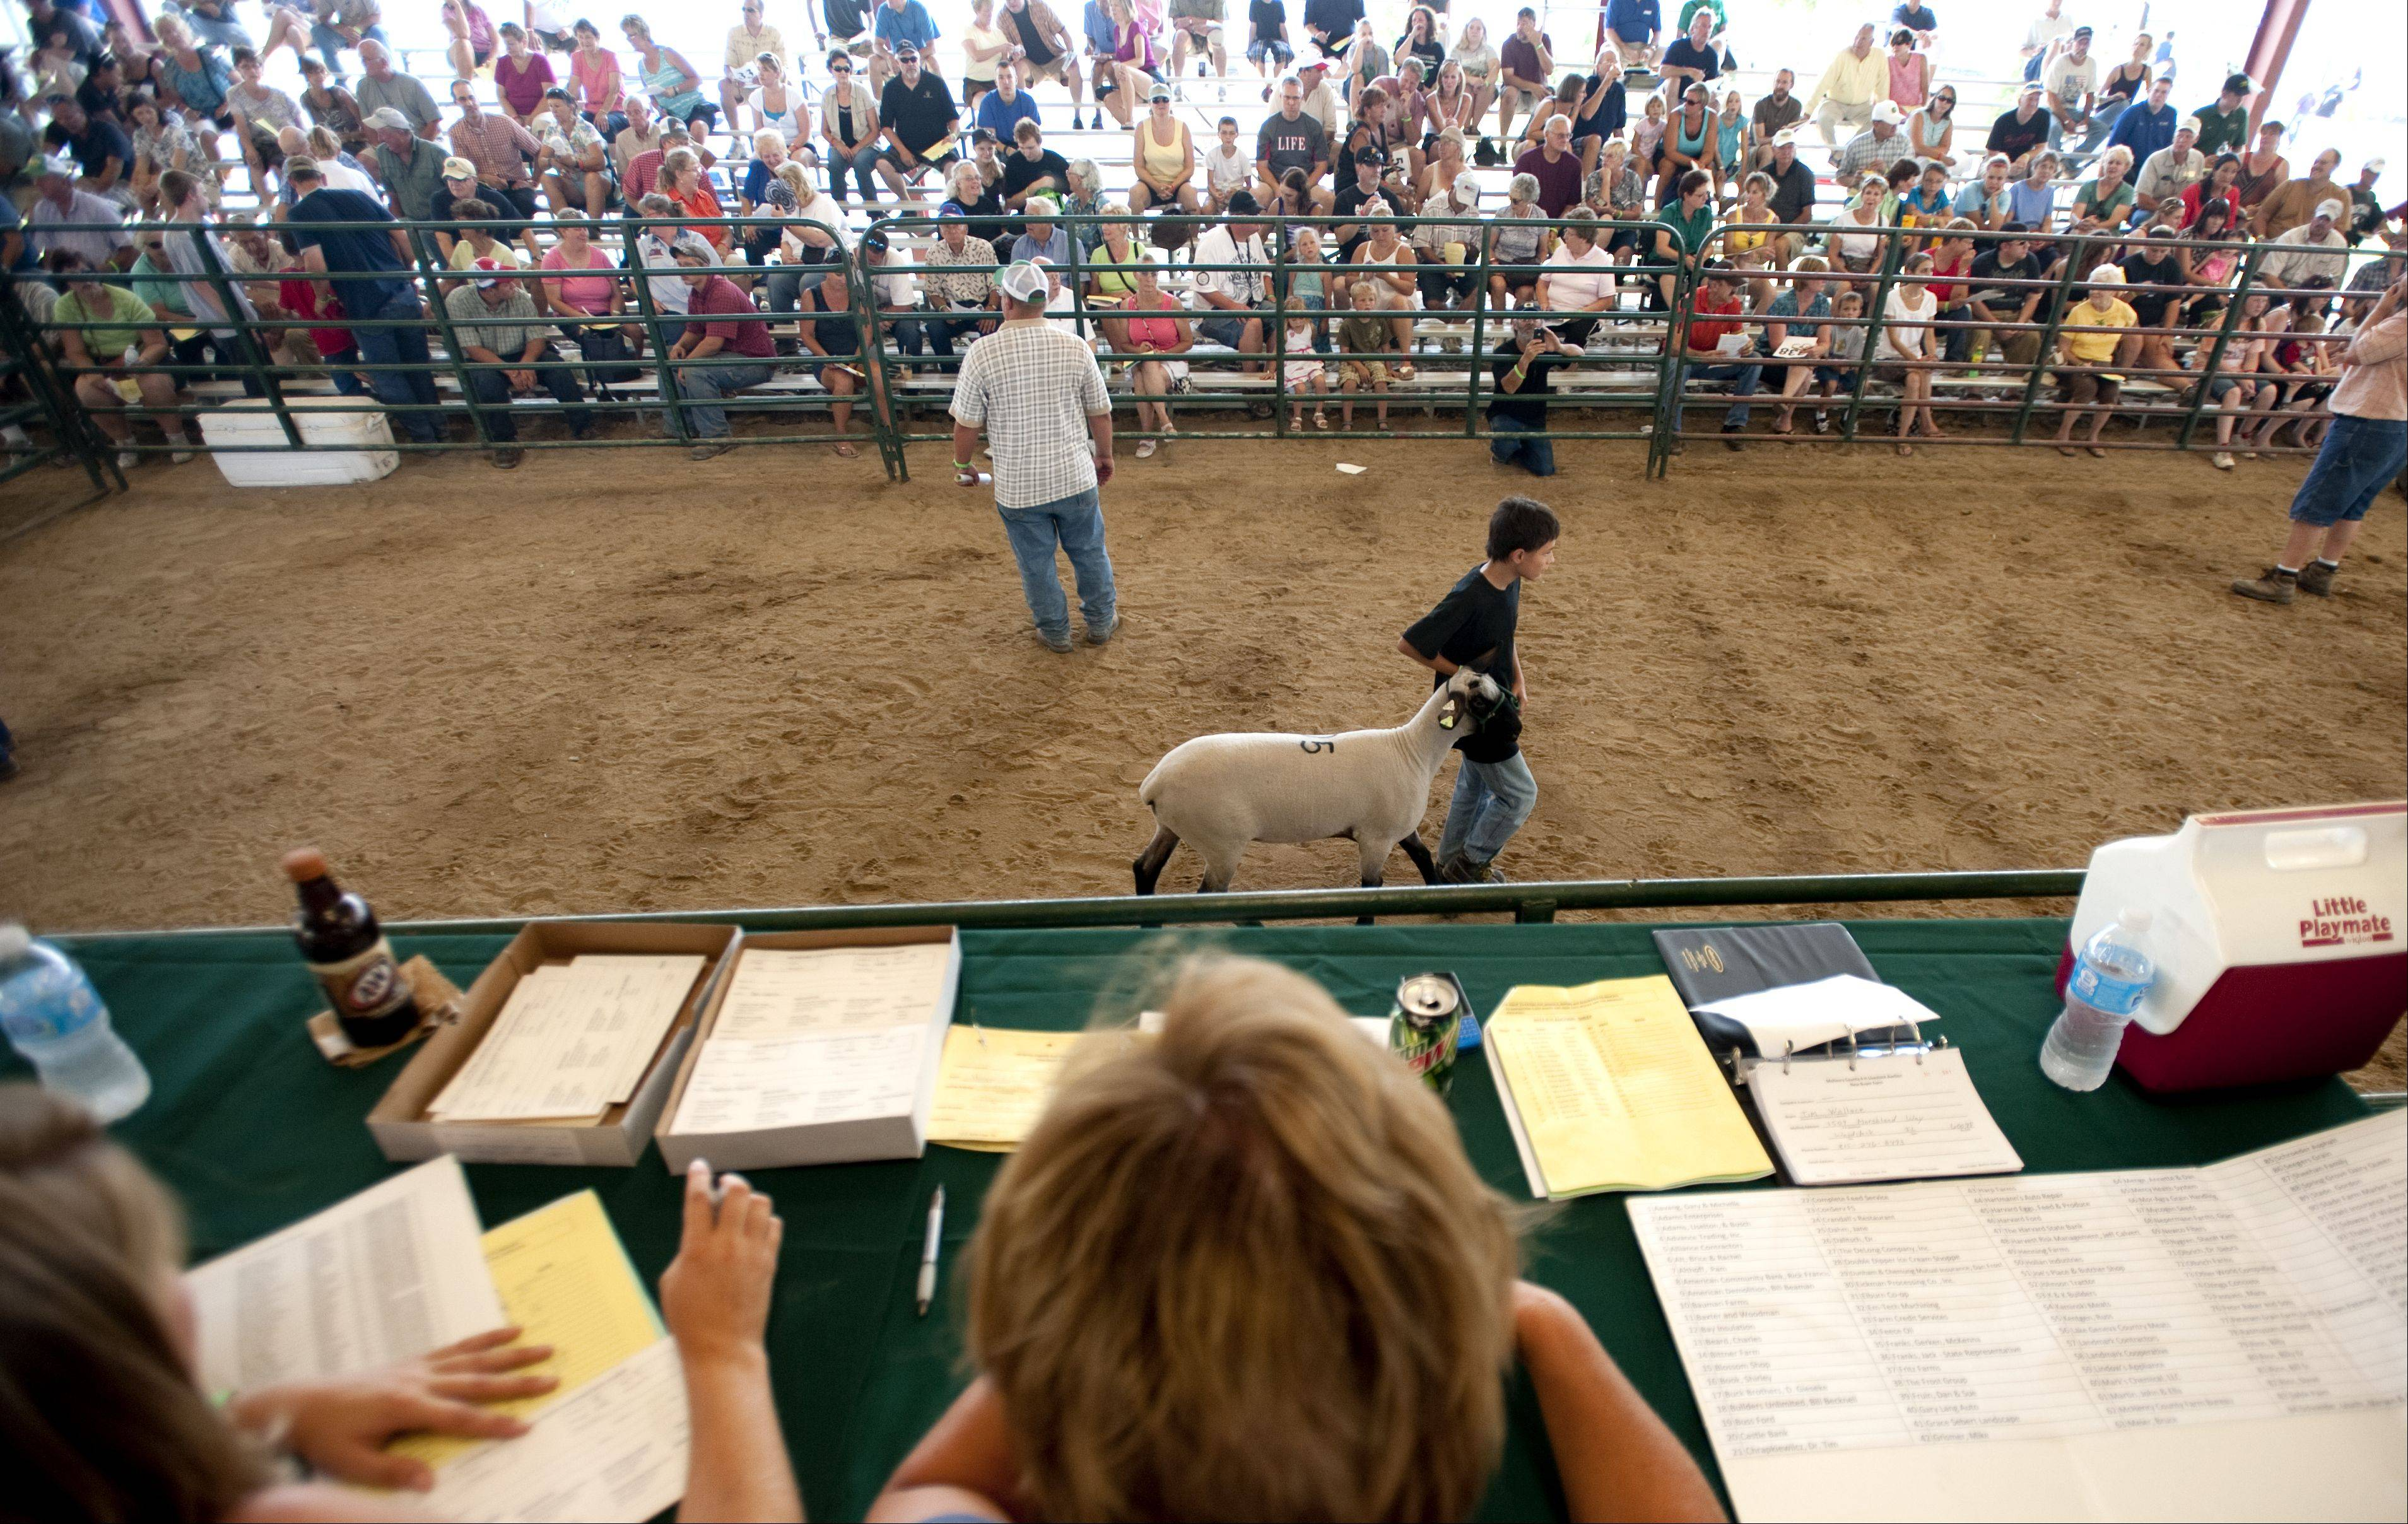 Presenters at the 4-H Livestock Auction and Sale of Champions showed off their livestock in the Hansen Pavilion Saturday at the McHenry County Fair in Woodstock. Many visitors who won bids donated their prizes to local businesses.